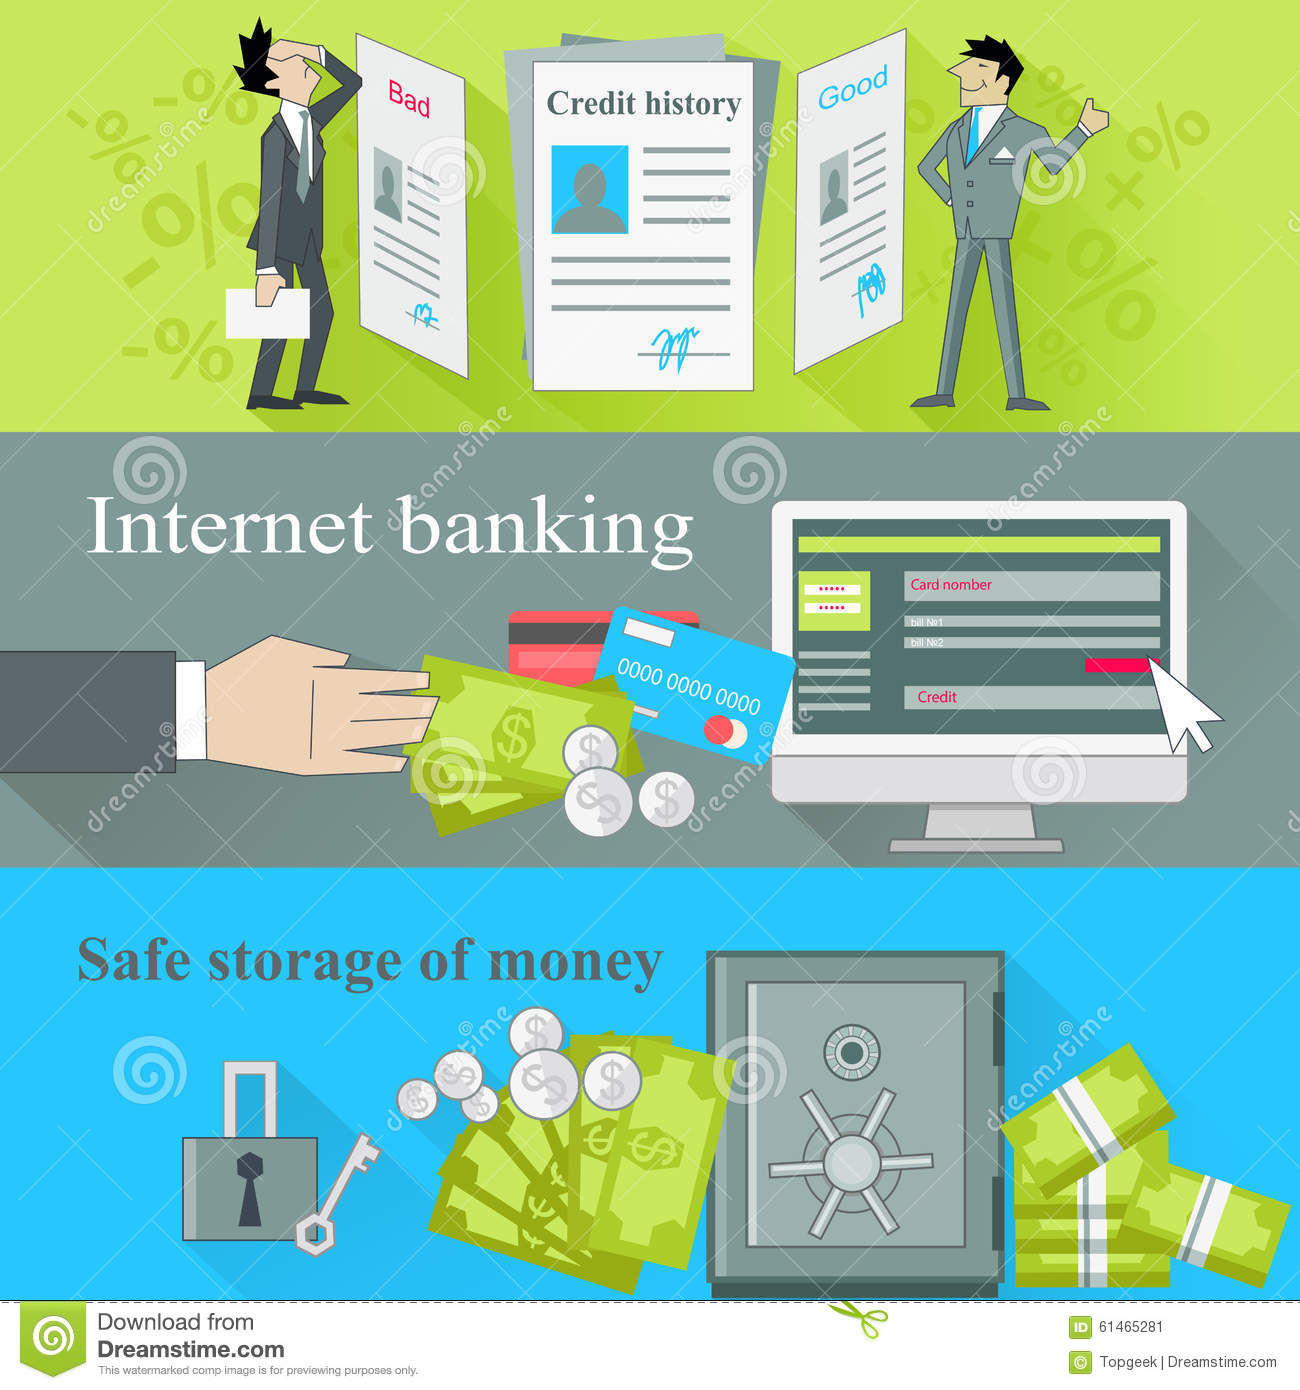 Loan With Bad Credit >> Internet Banking And Safe Storage Money Stock Vector - Image: 61465281